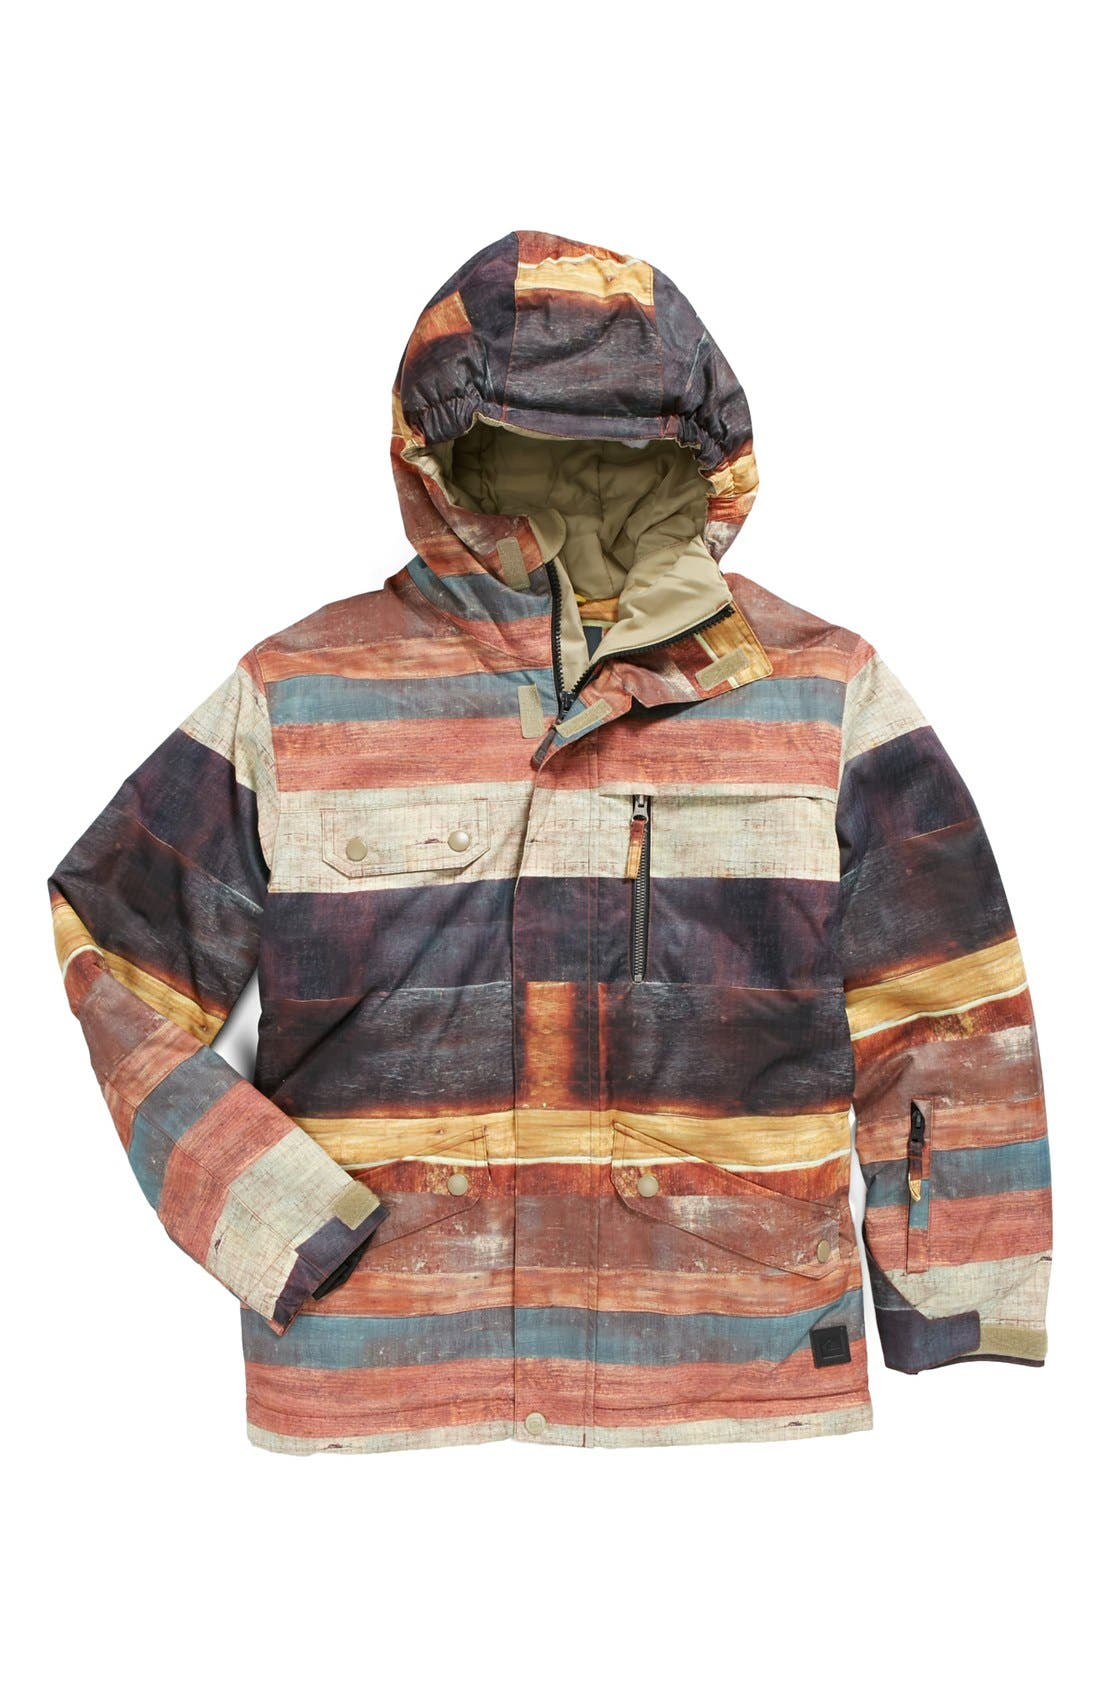 Alternate Image 1 Selected - Quiksilver 'Travis Rice Raft' Jacket (Little Boys & Big Boys)